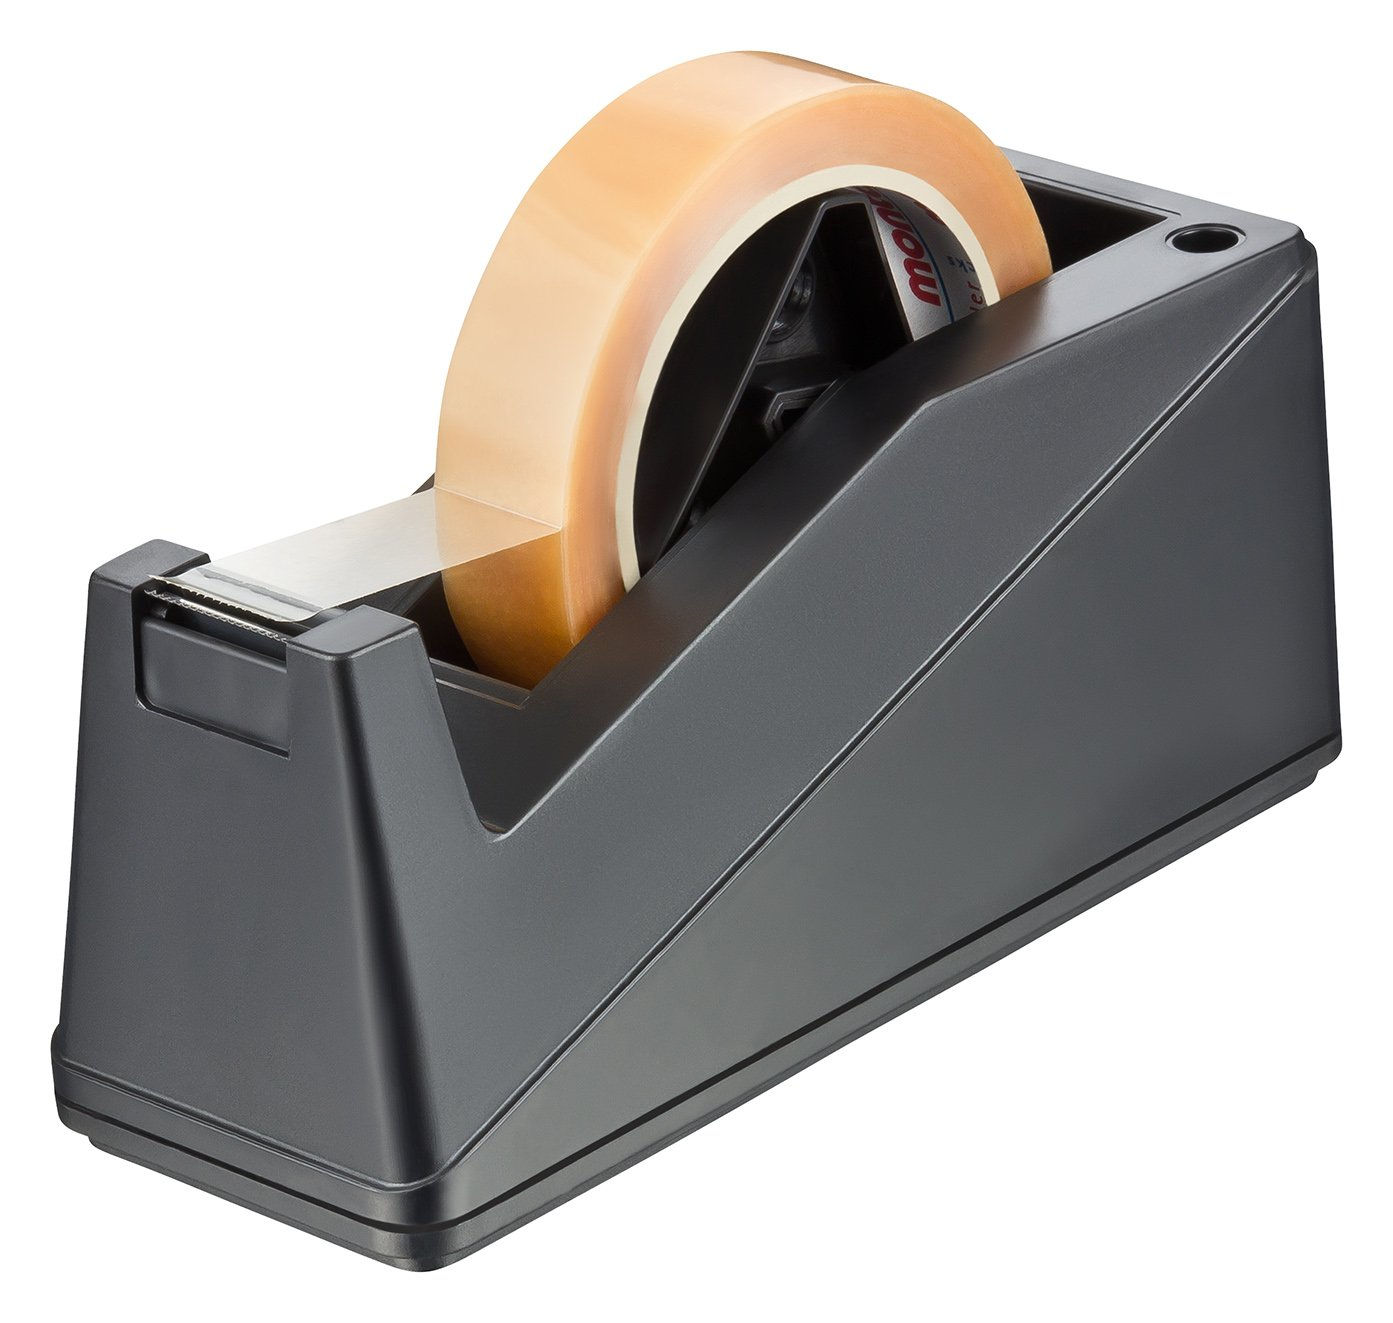 haggiy Desktop Tape Dispenser stable and heavy (3 lb.) One-hand Dispensing, 1-Inch and 3-Inch Core (Black)